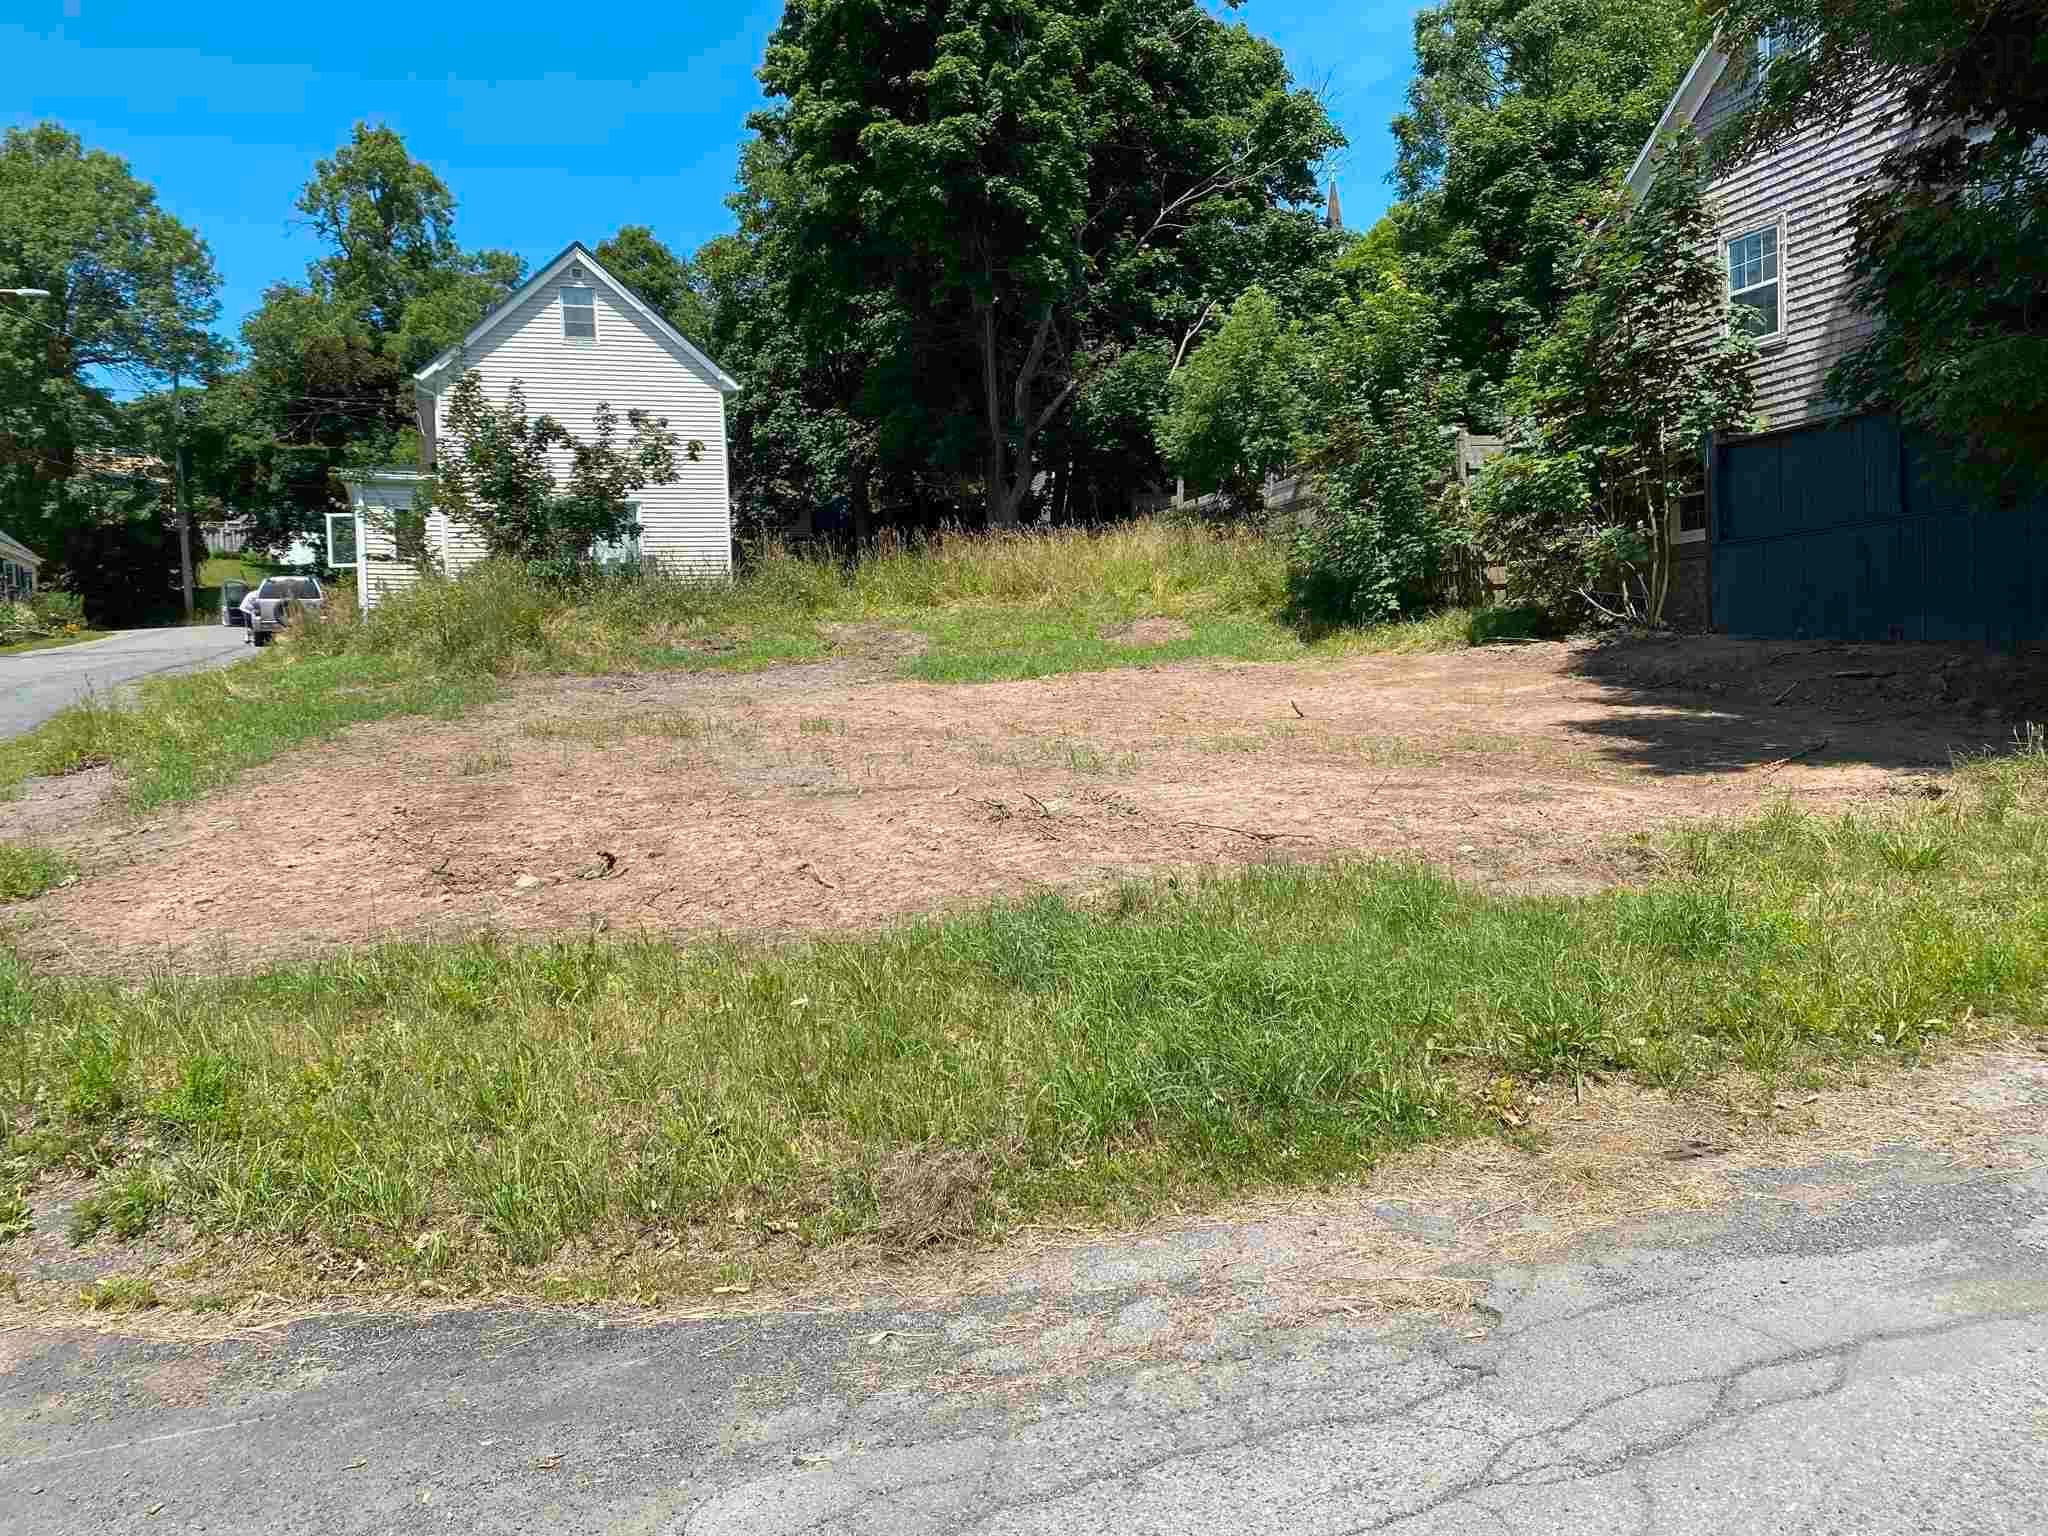 Main Photo: 104 St Andrews Street in Pictou: 107-Trenton,Westville,Pictou Vacant Land for sale (Northern Region)  : MLS®# 202123220